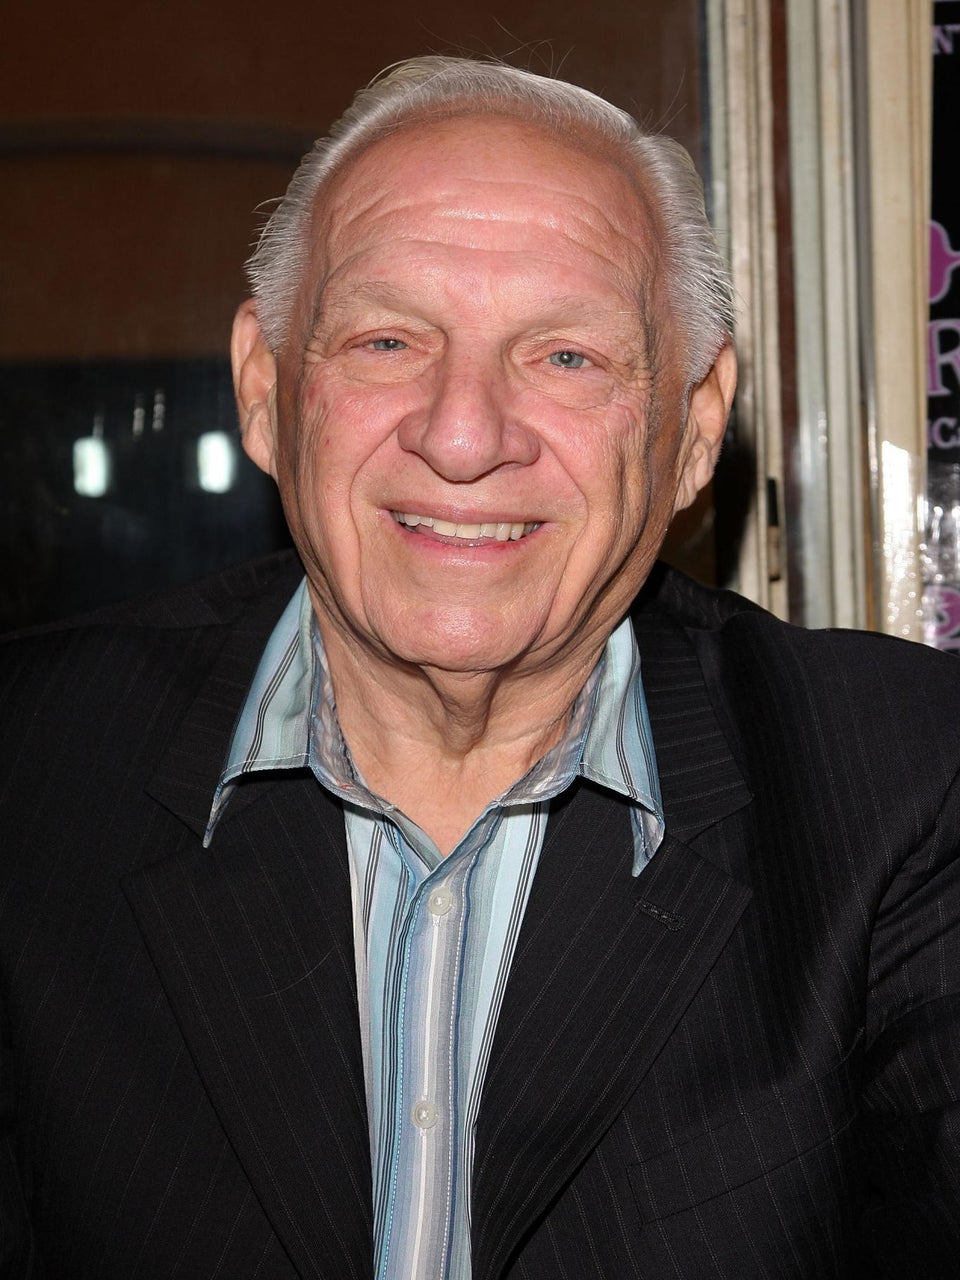 Former N.W.A. Manager Jerry Heller Files $110 Million Lawsuit Against 'Straight Outta Compton' Producers